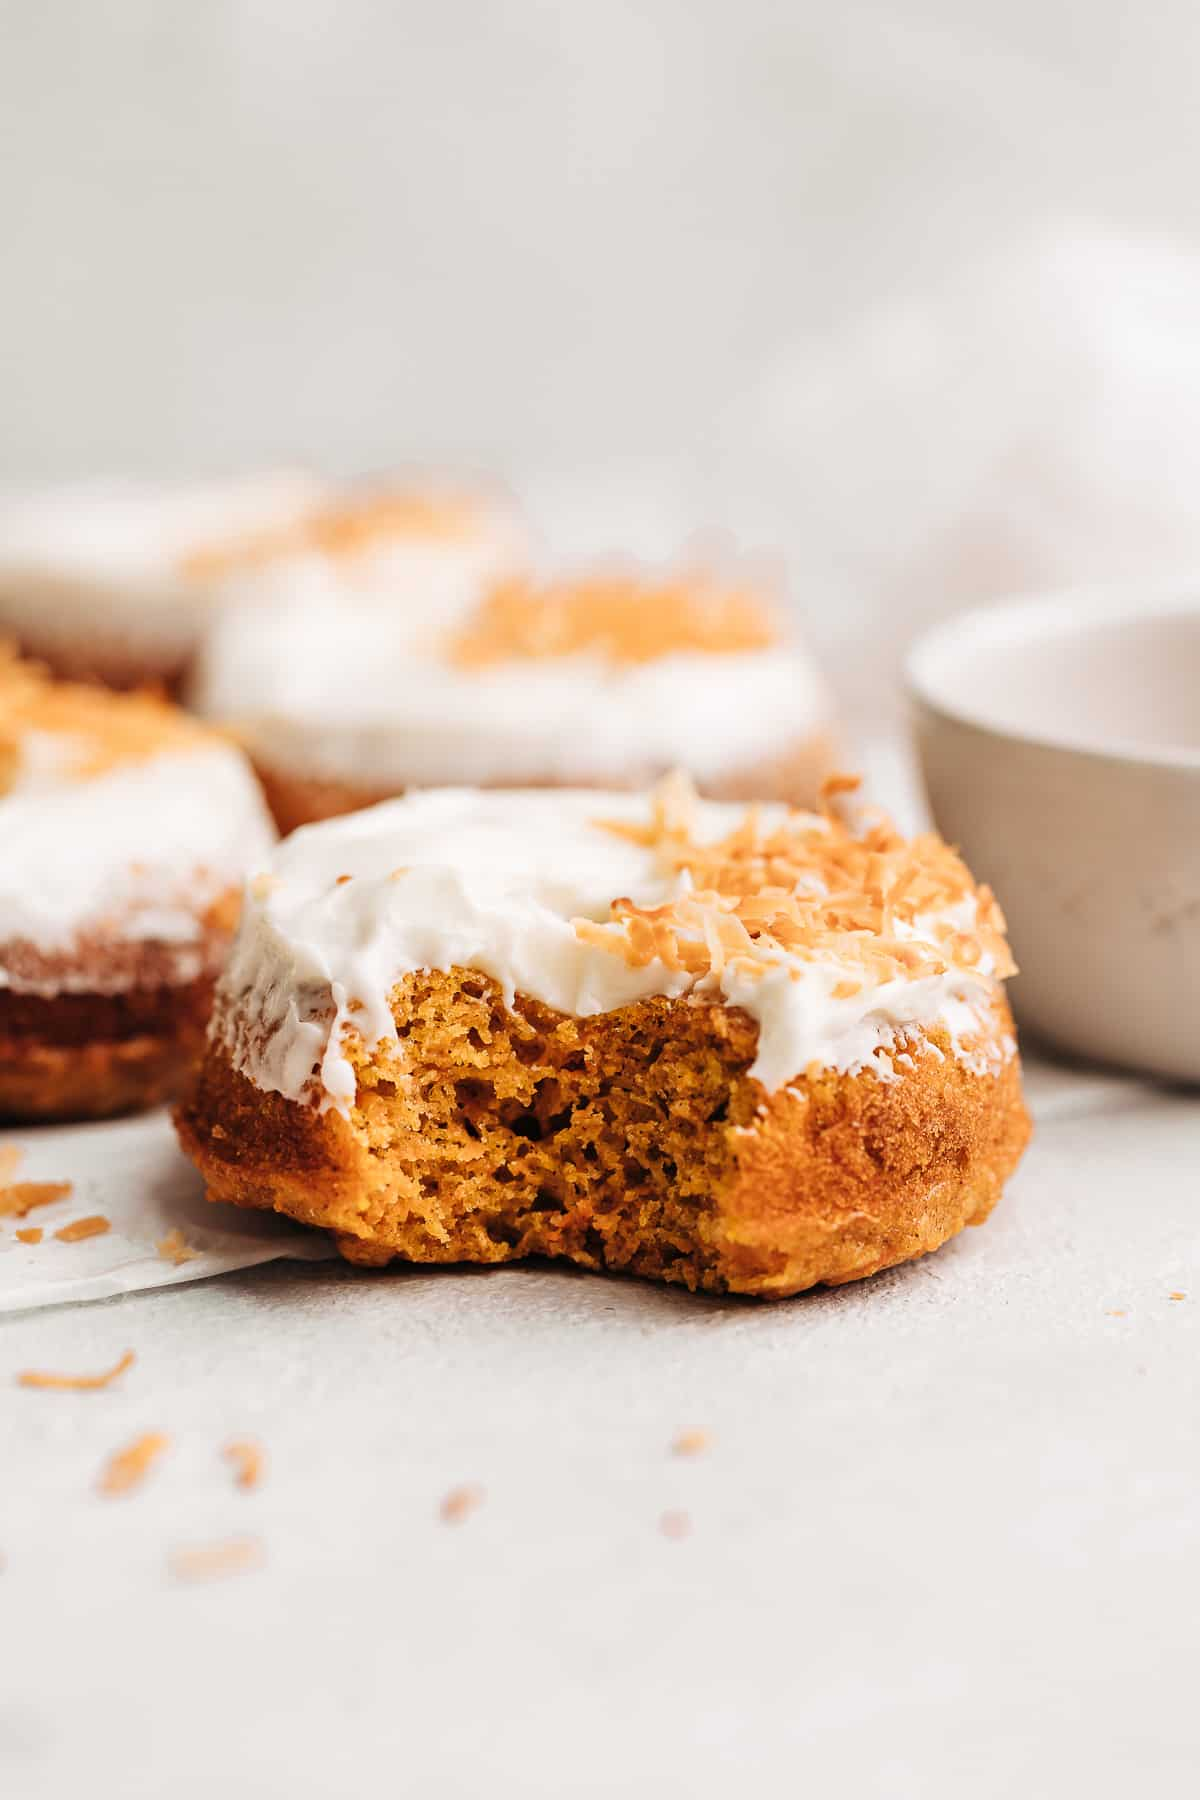 Bite shot of a carrot cake donut with cream cheese frosting and toasted coconut flakes.